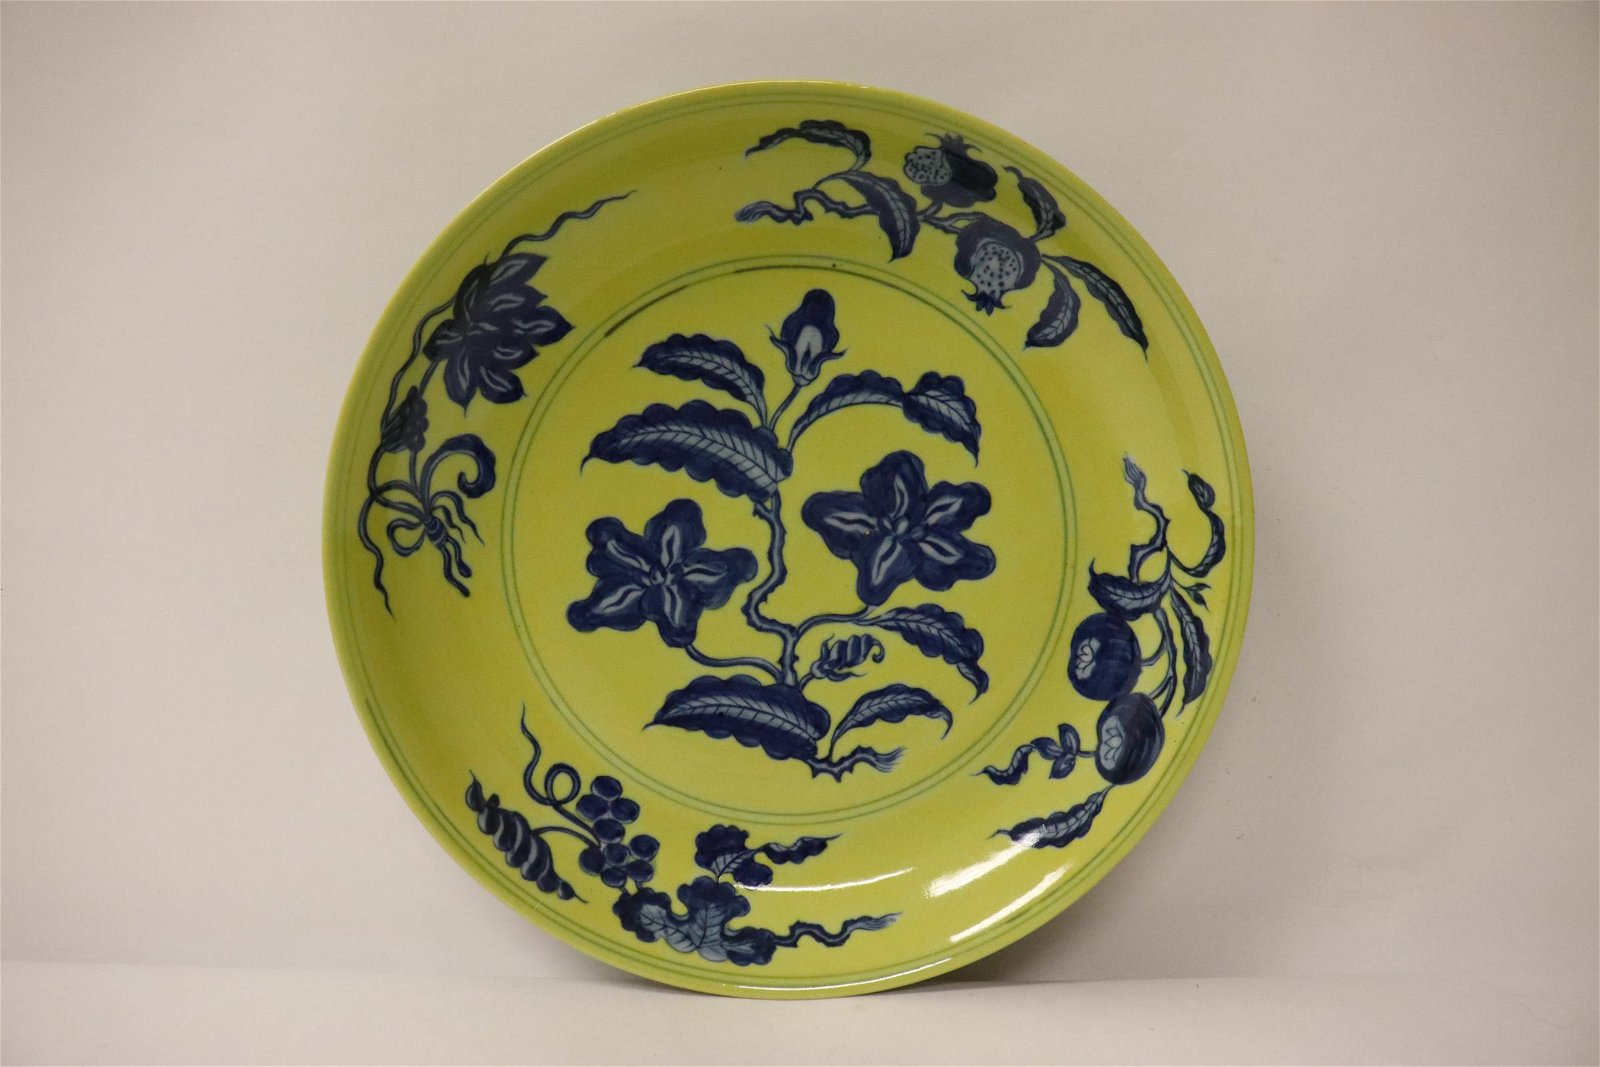 A beautiful Chinese blue on yellow porcelain plate